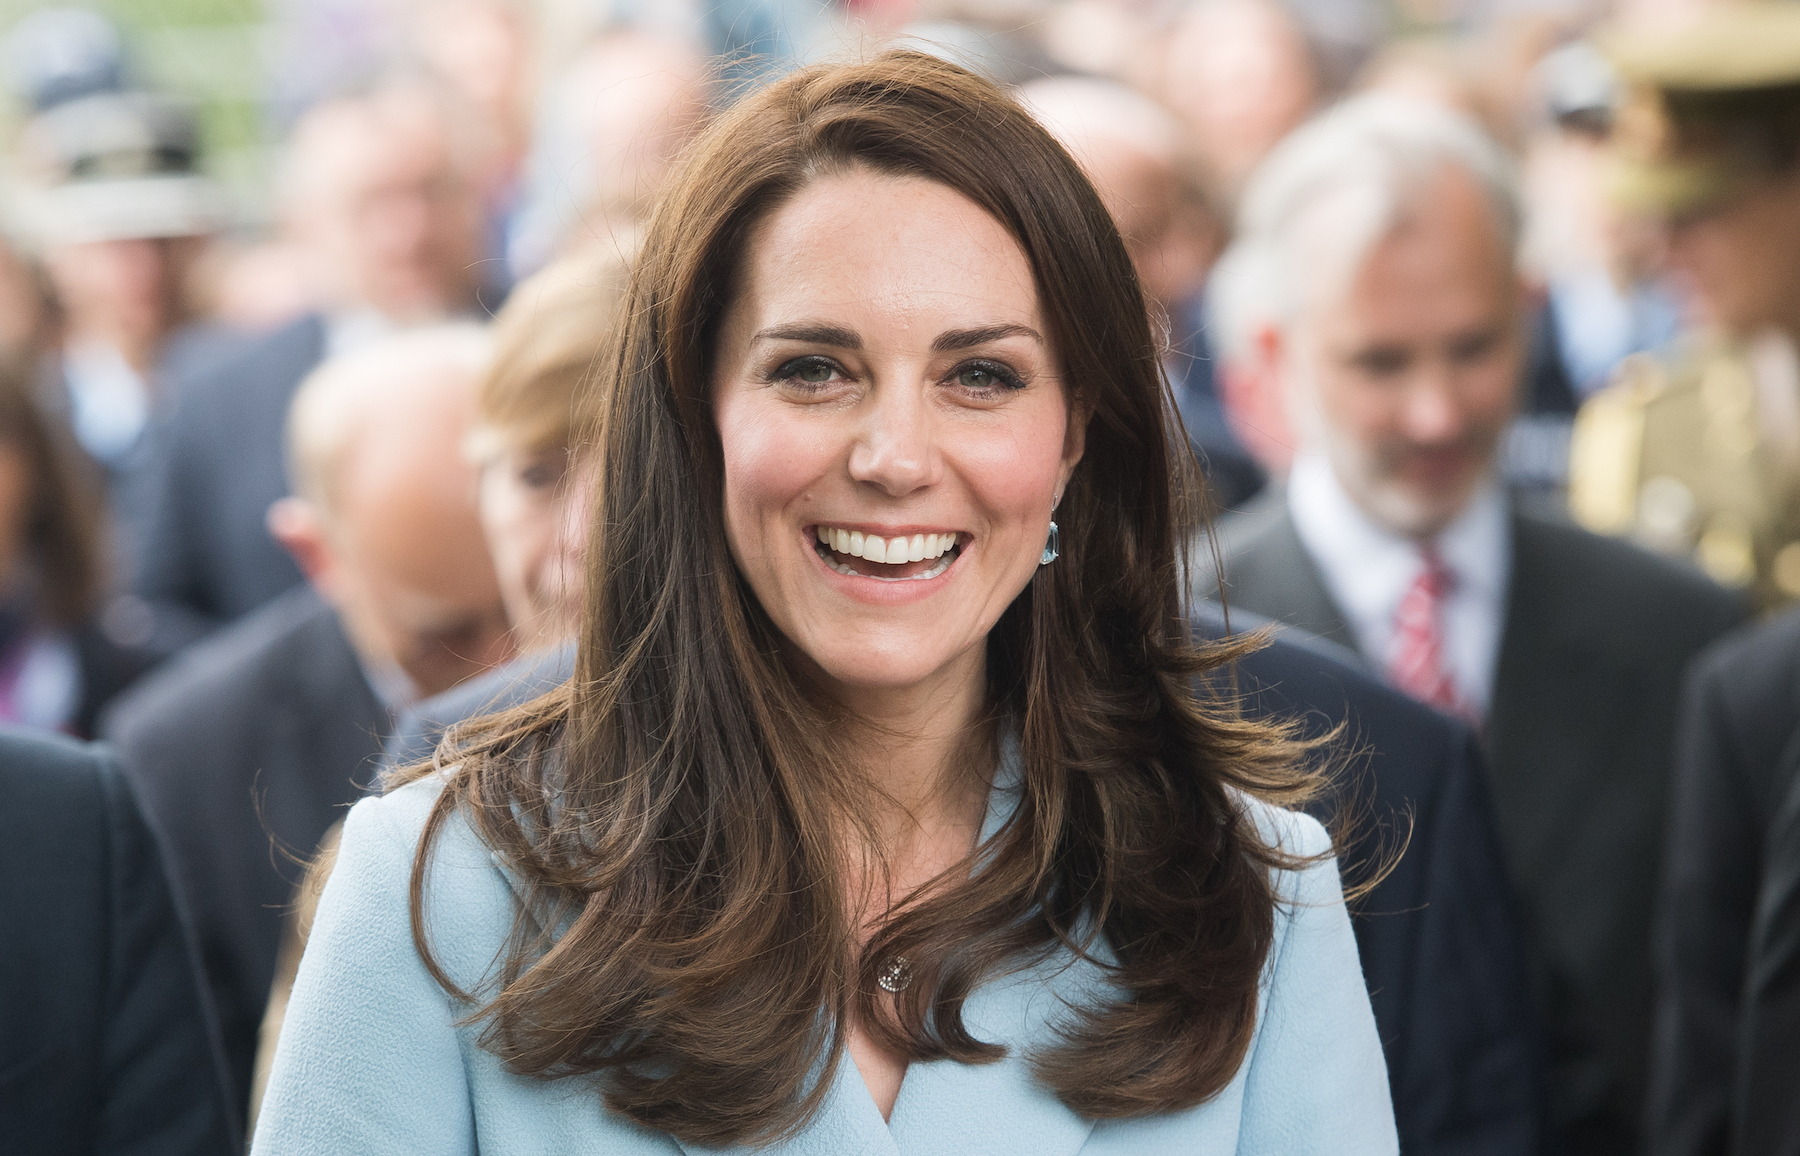 Kate Middleton in light blue coat, smiling